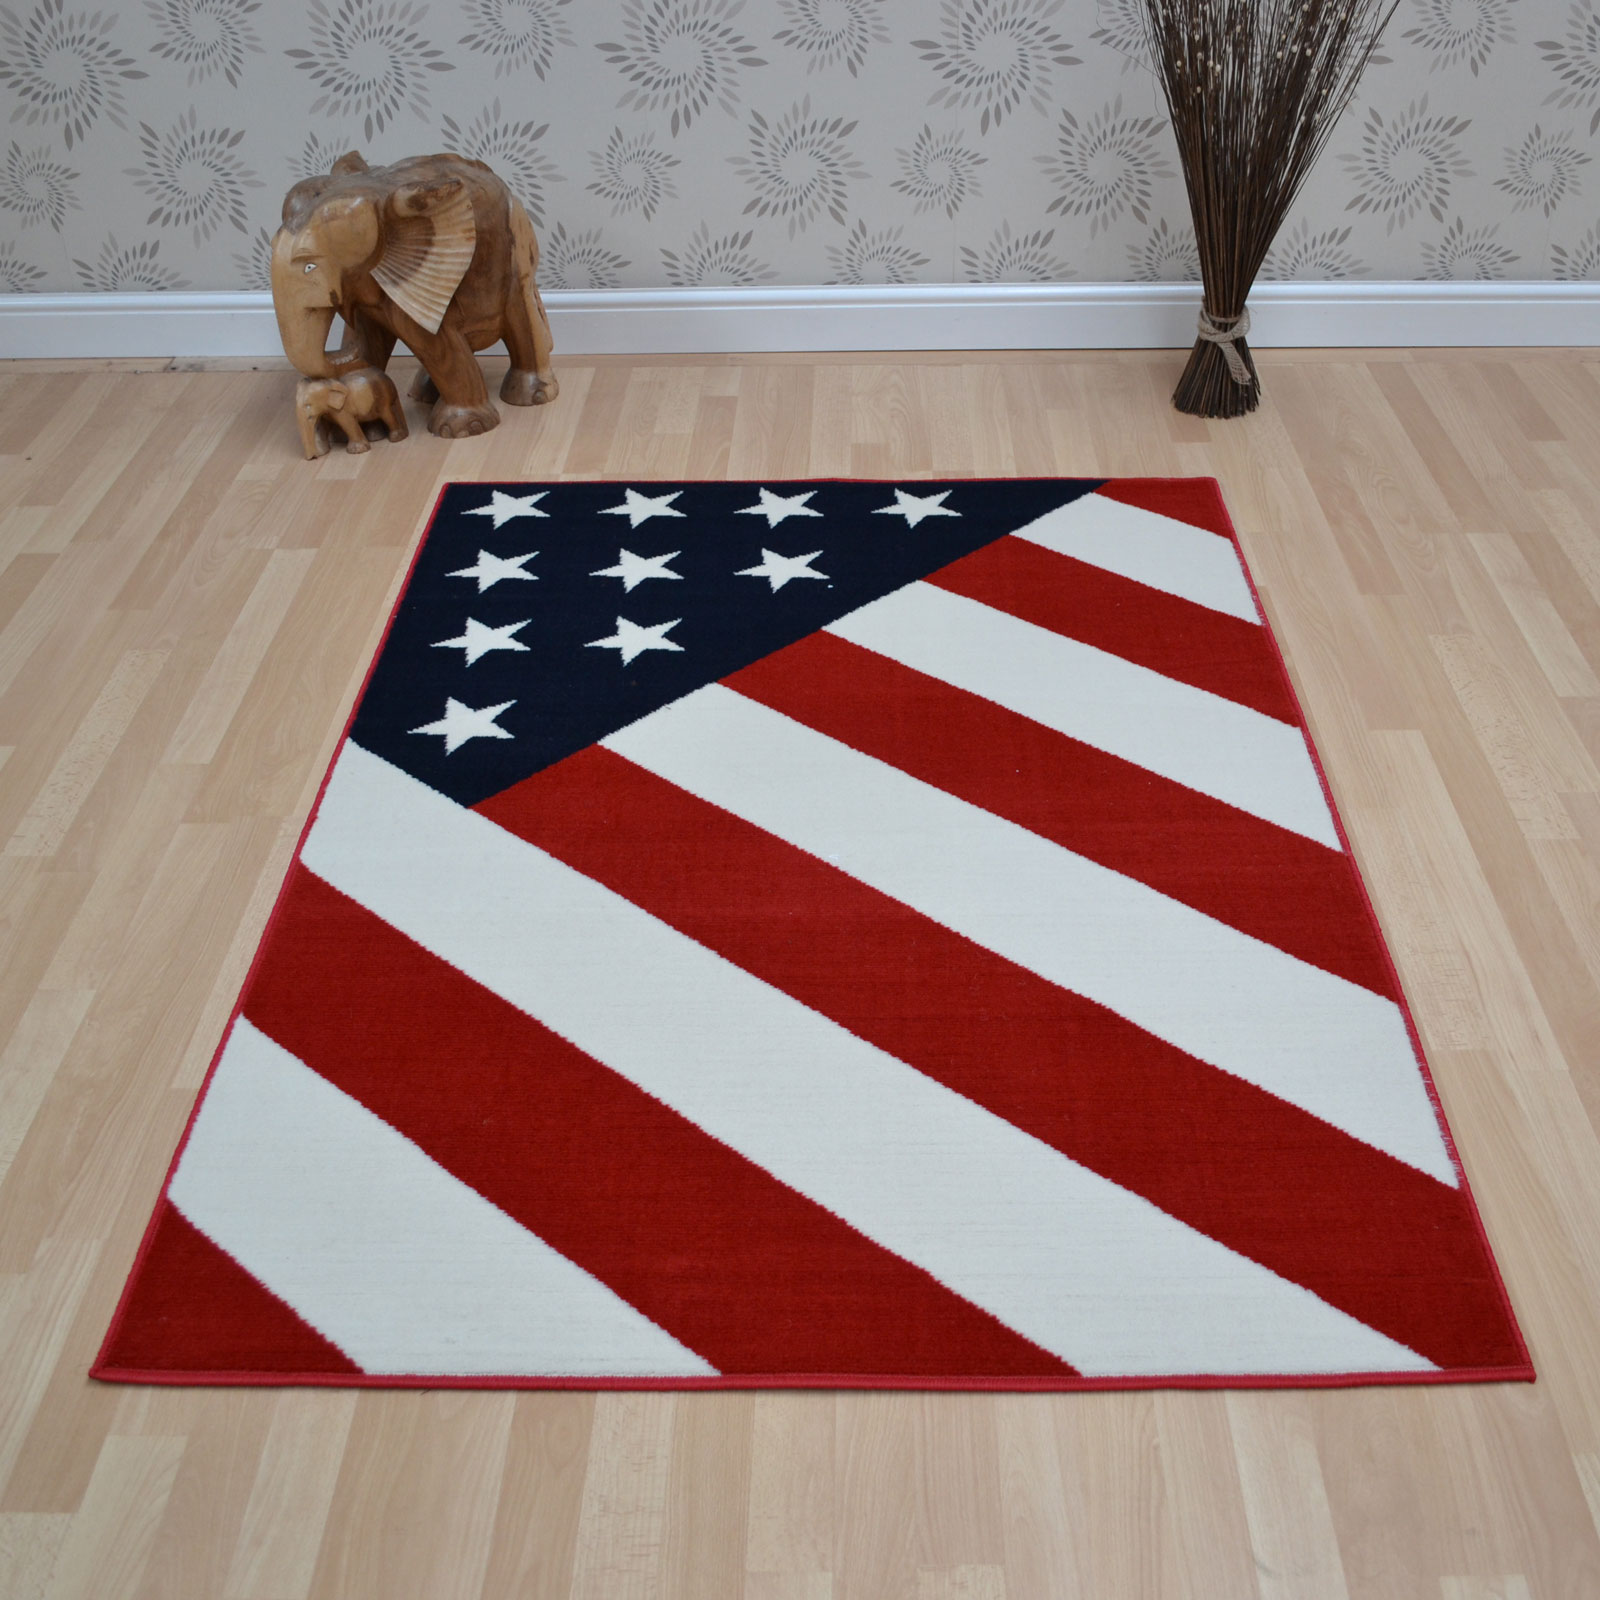 Vegas Rugs 4707 3X67 USA